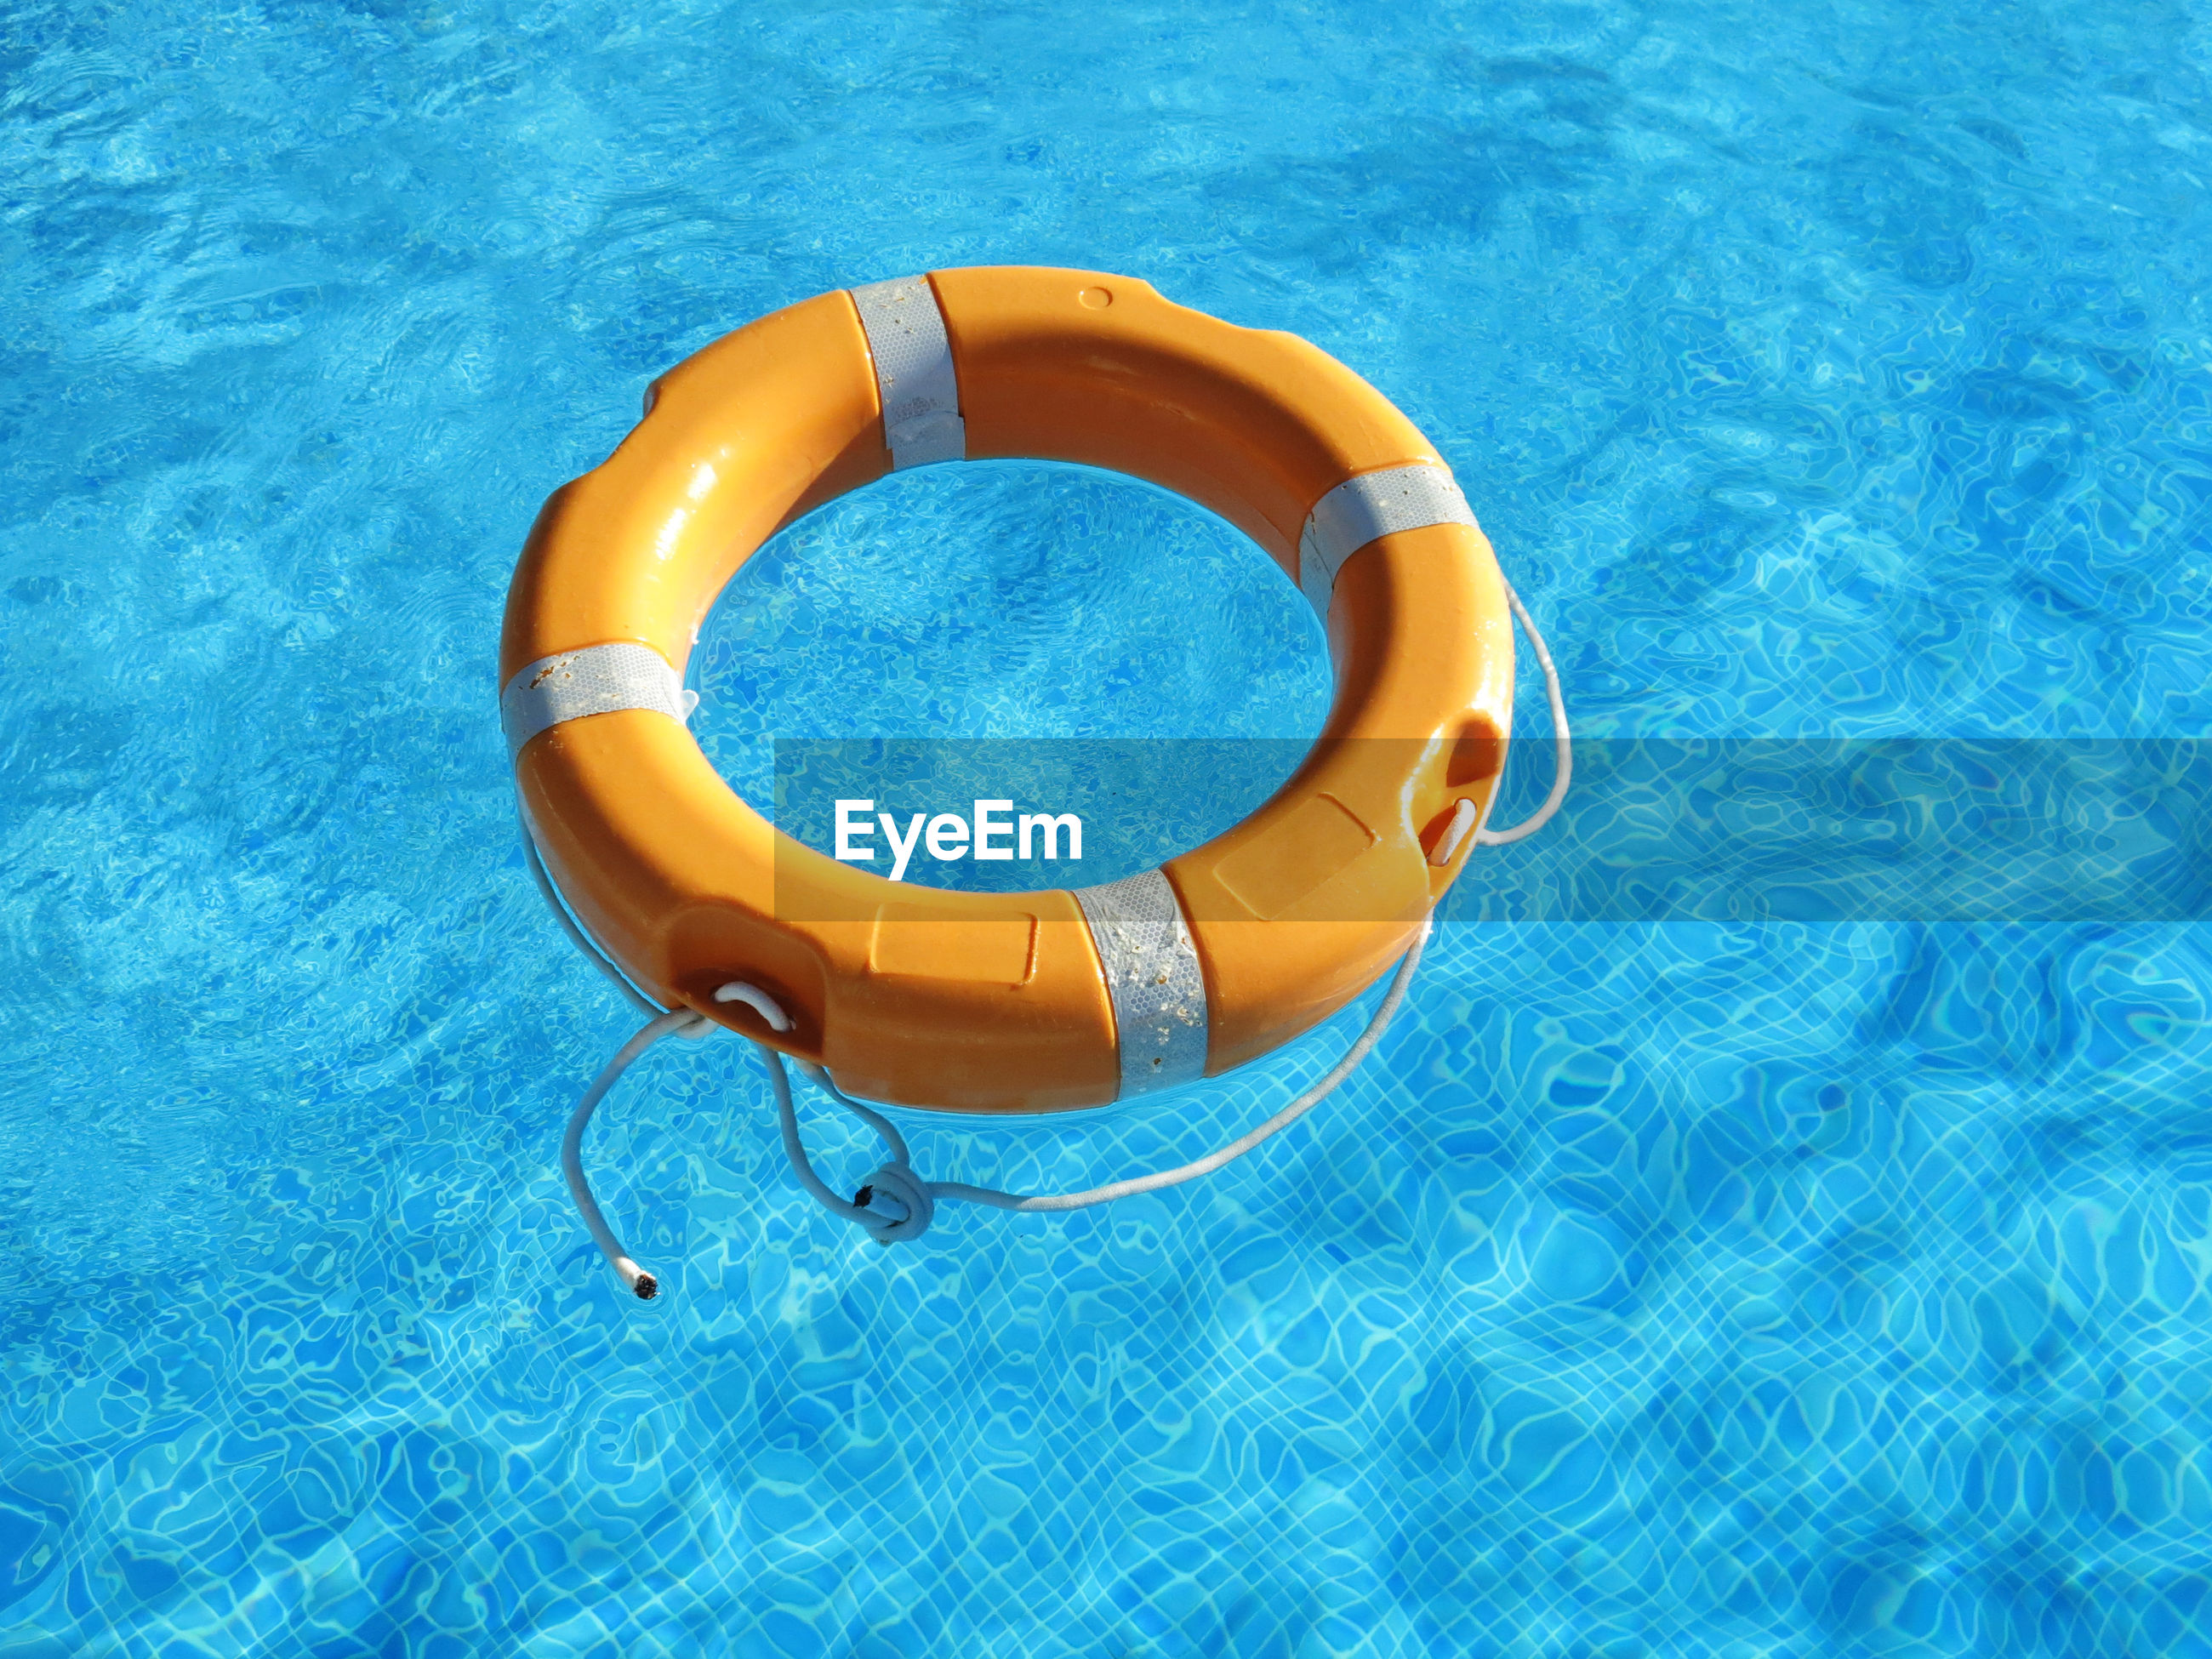 Close-up rubber ring in the pool